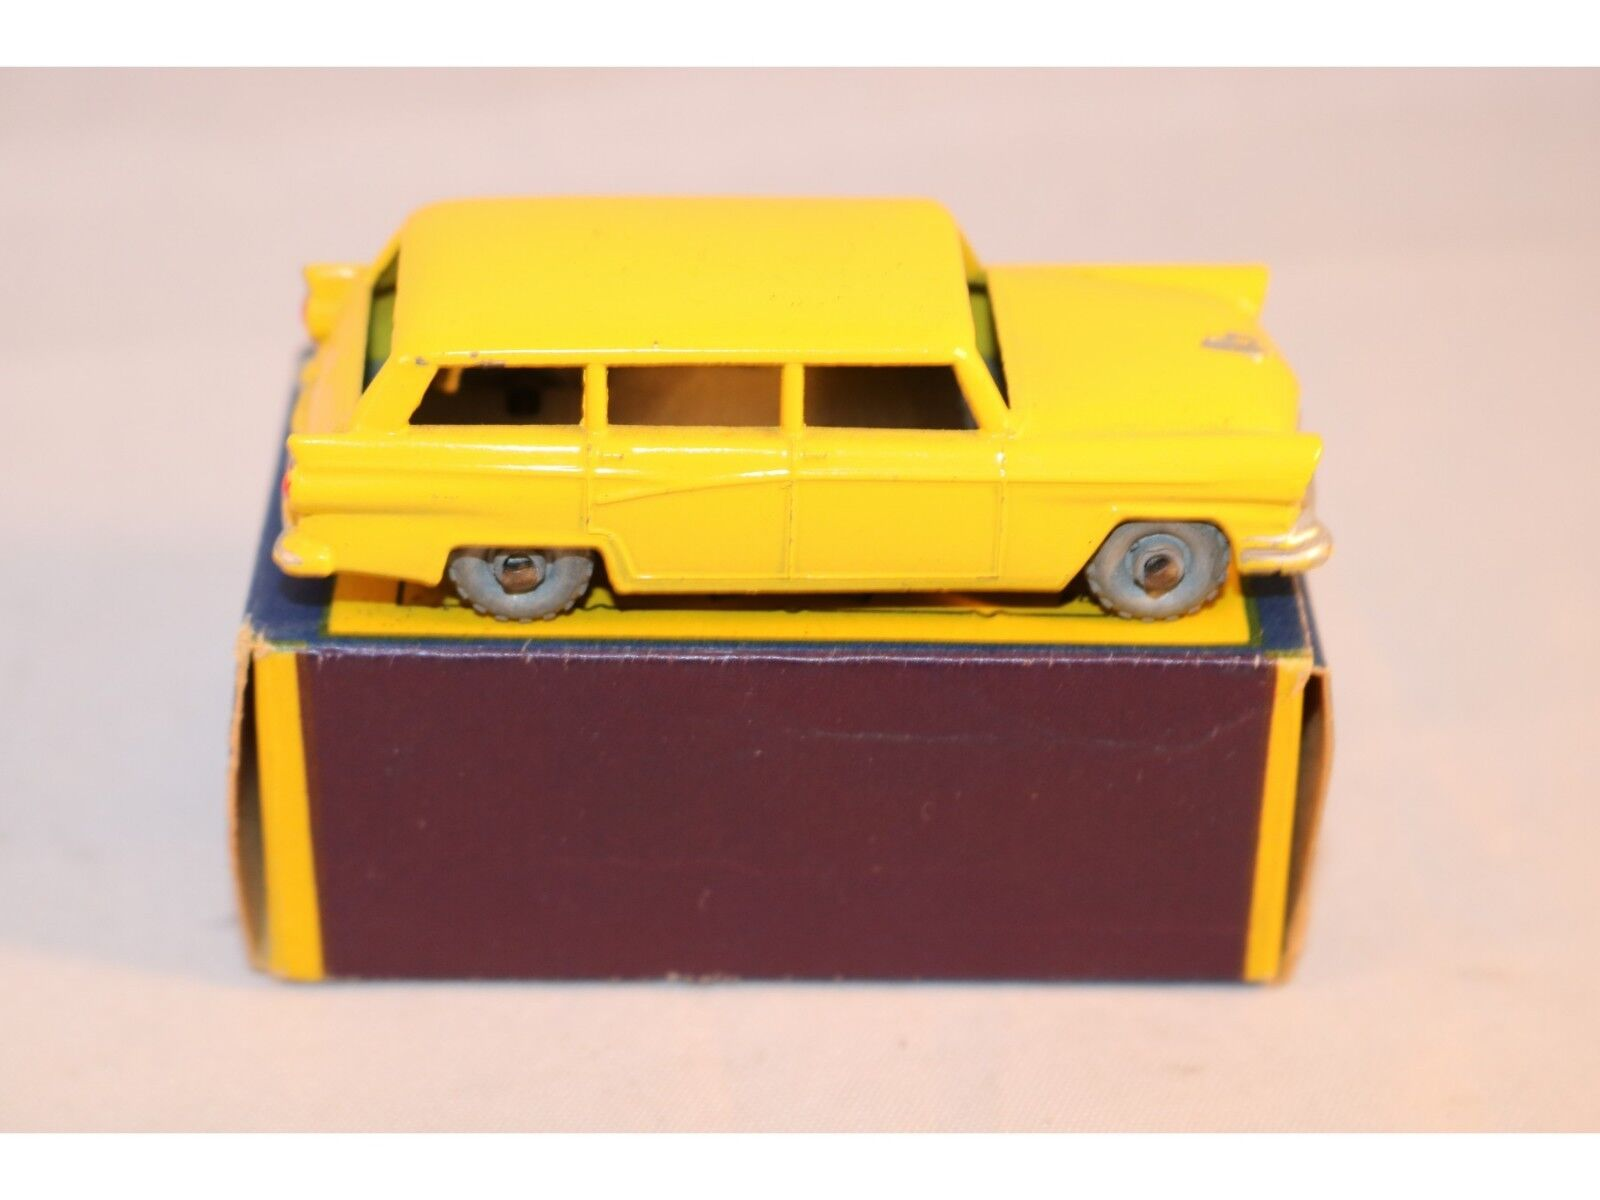 Matchbox Lesney 31 Ford station car GMW excellent plus to near mint condition